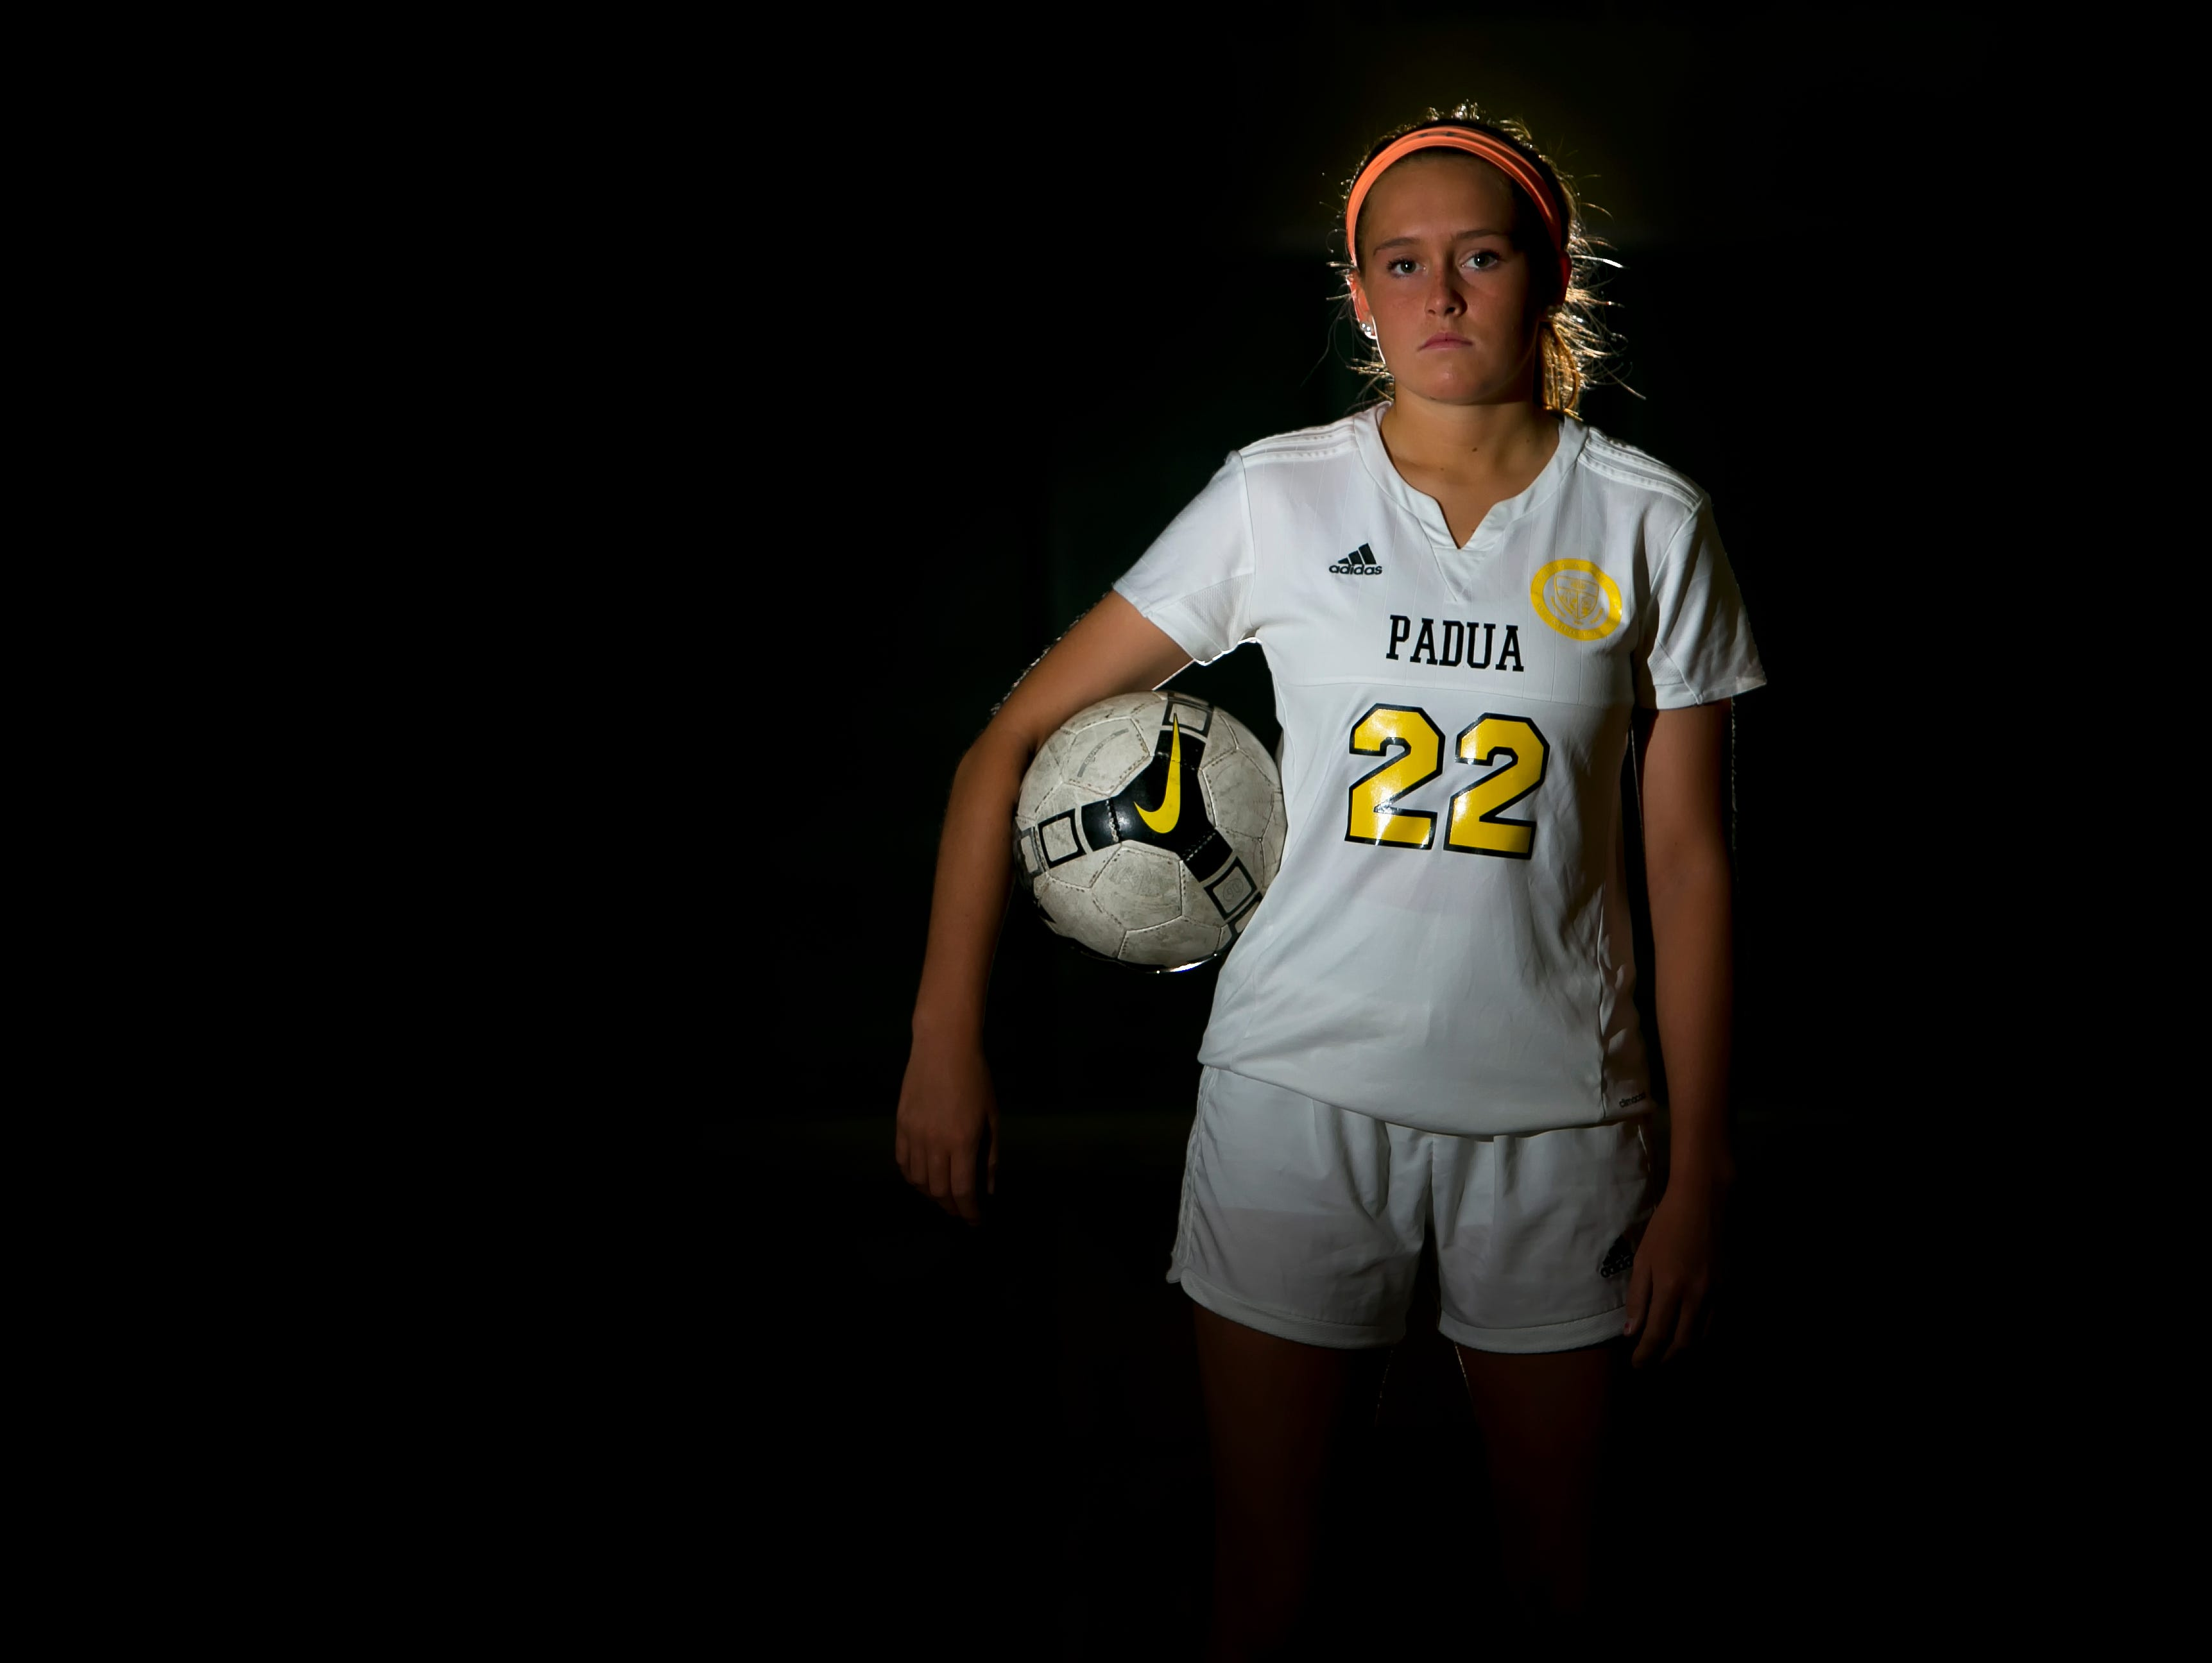 Padua Academy soccer player, Mackenzie Scully, is the Athlete of the Week.